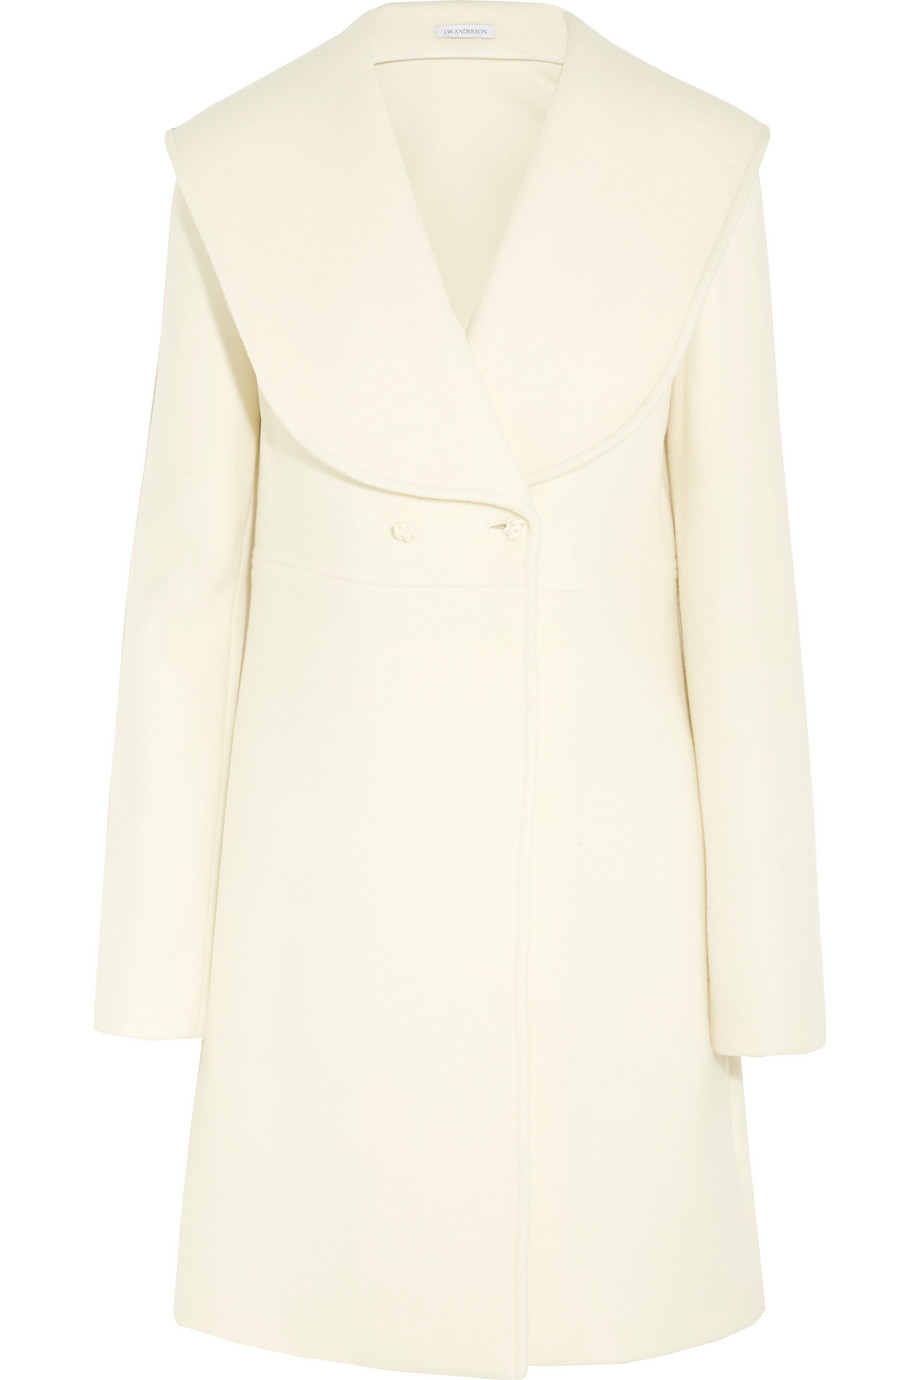 J.W.Anderson Wool and Mohair-Blend Felt Coat, Cream, Women's, Size: 12